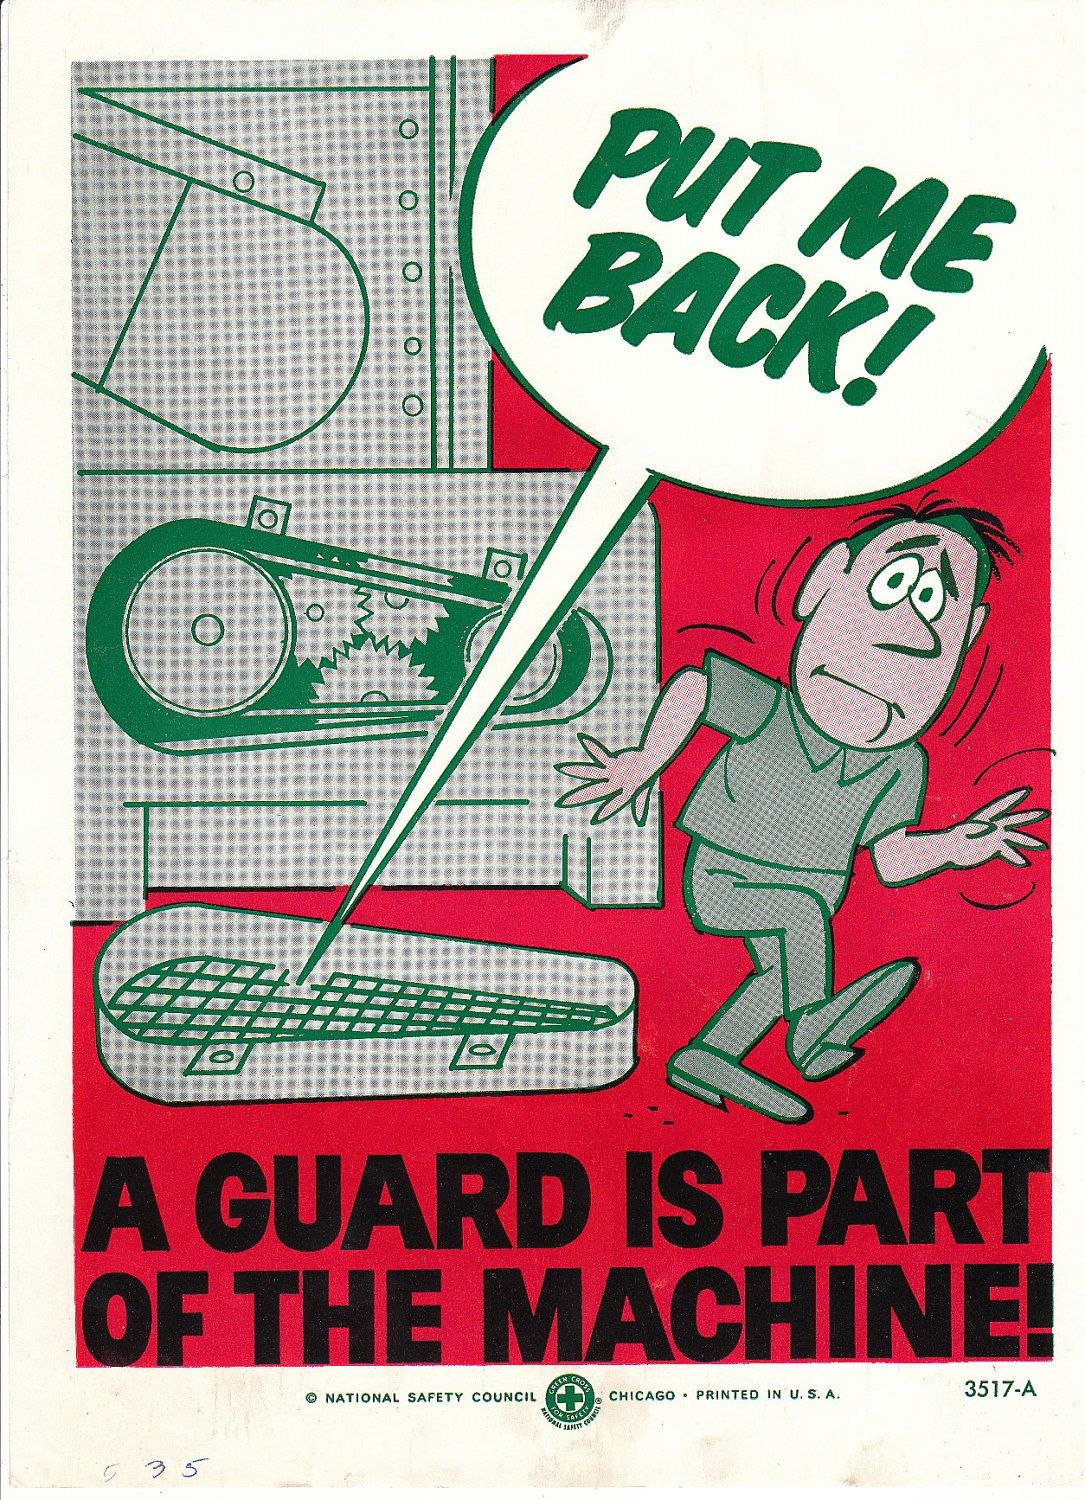 NSC Put Me Back! Safety posters